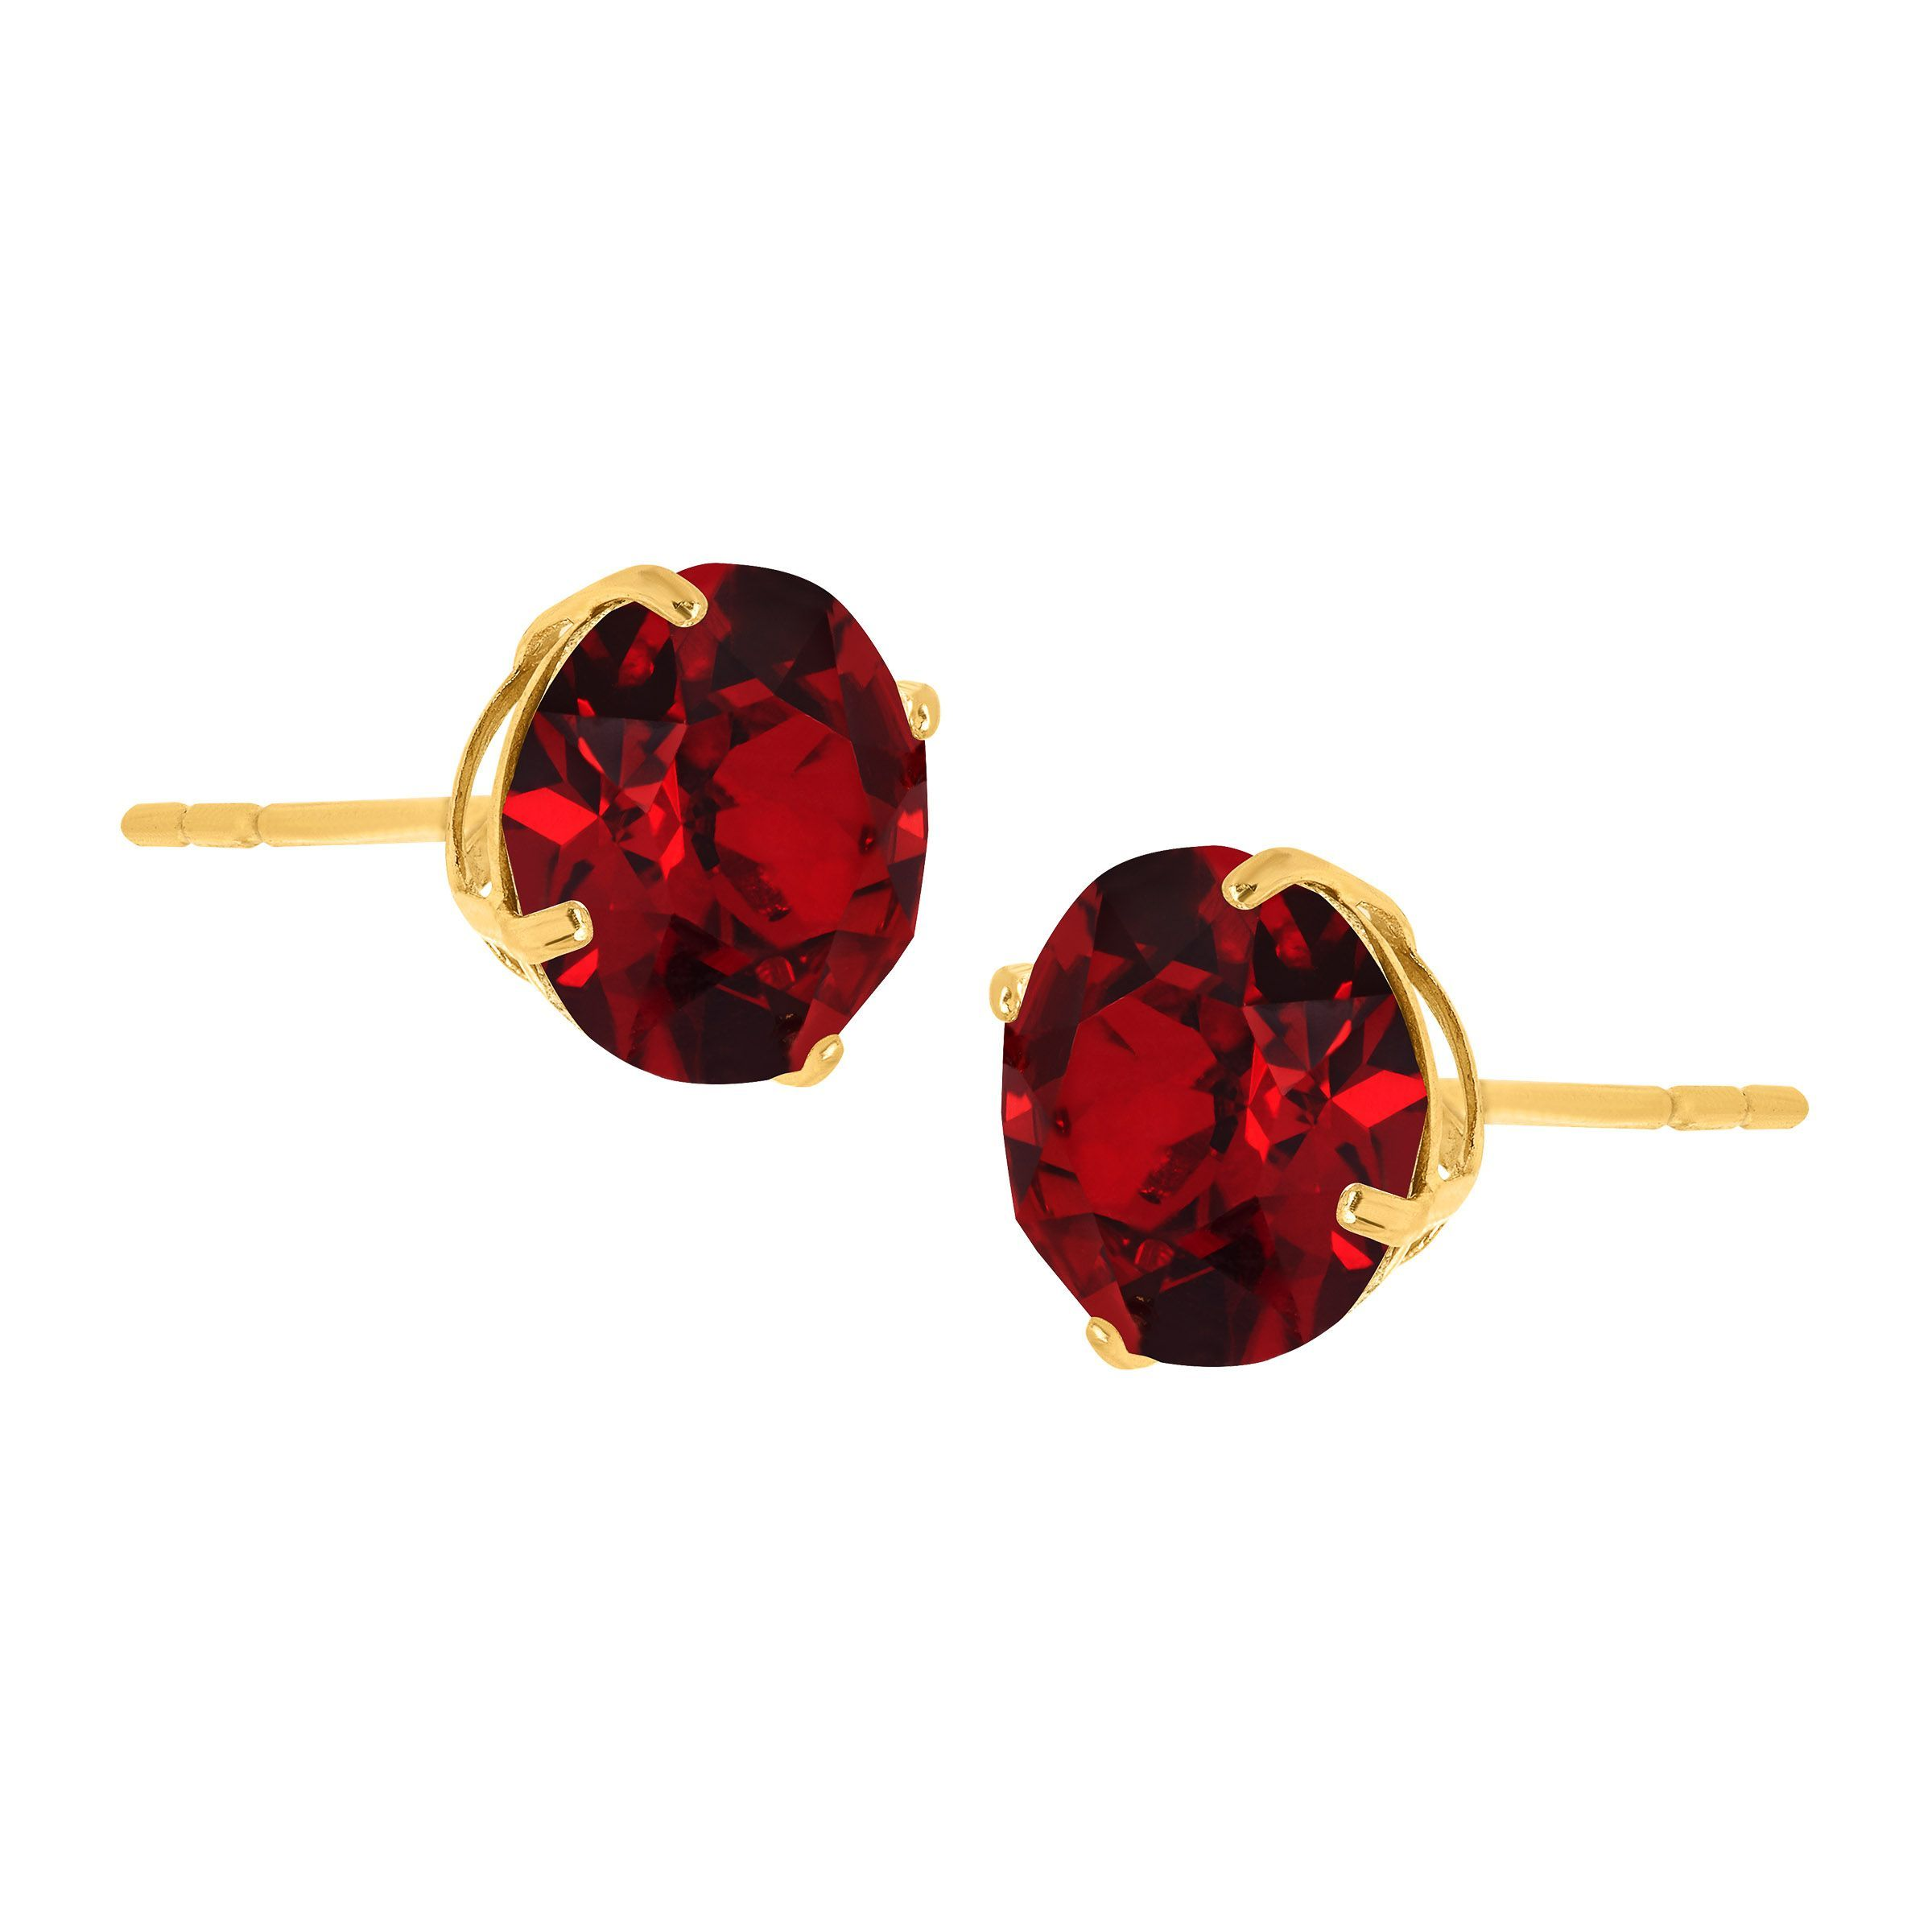 Crystaluxe 7 Mm Stud Earrings With Red Swarovski Crystals In 10k Gold